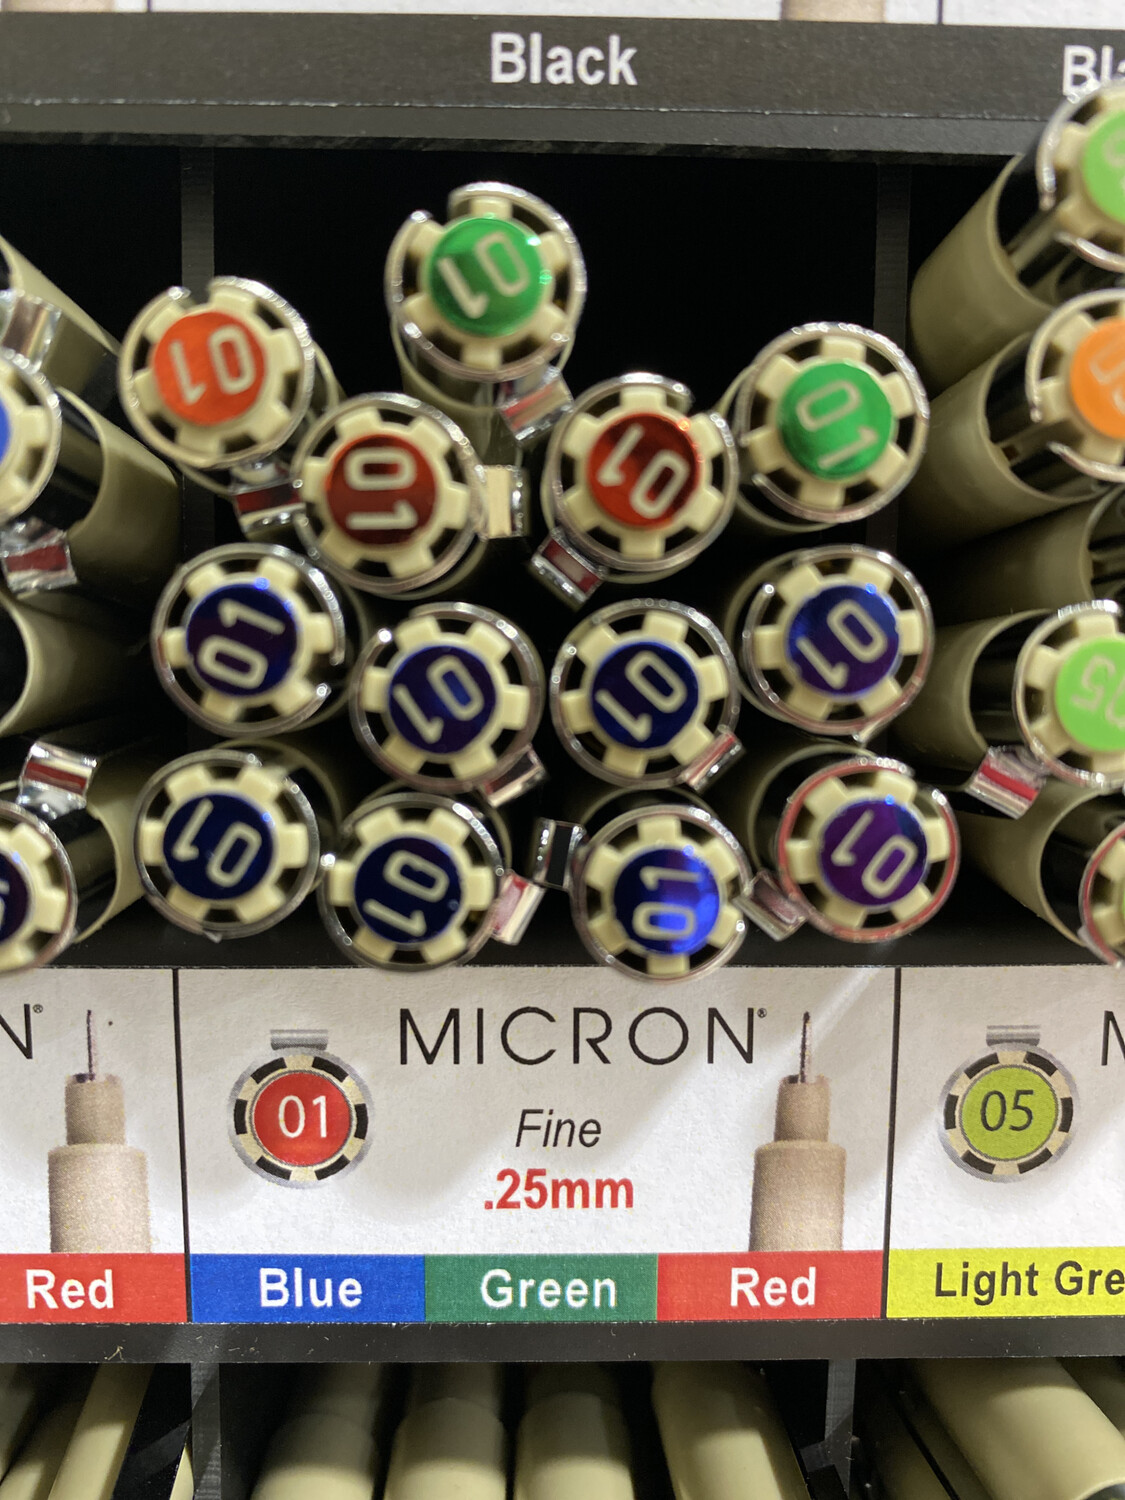 Micron Red, 01